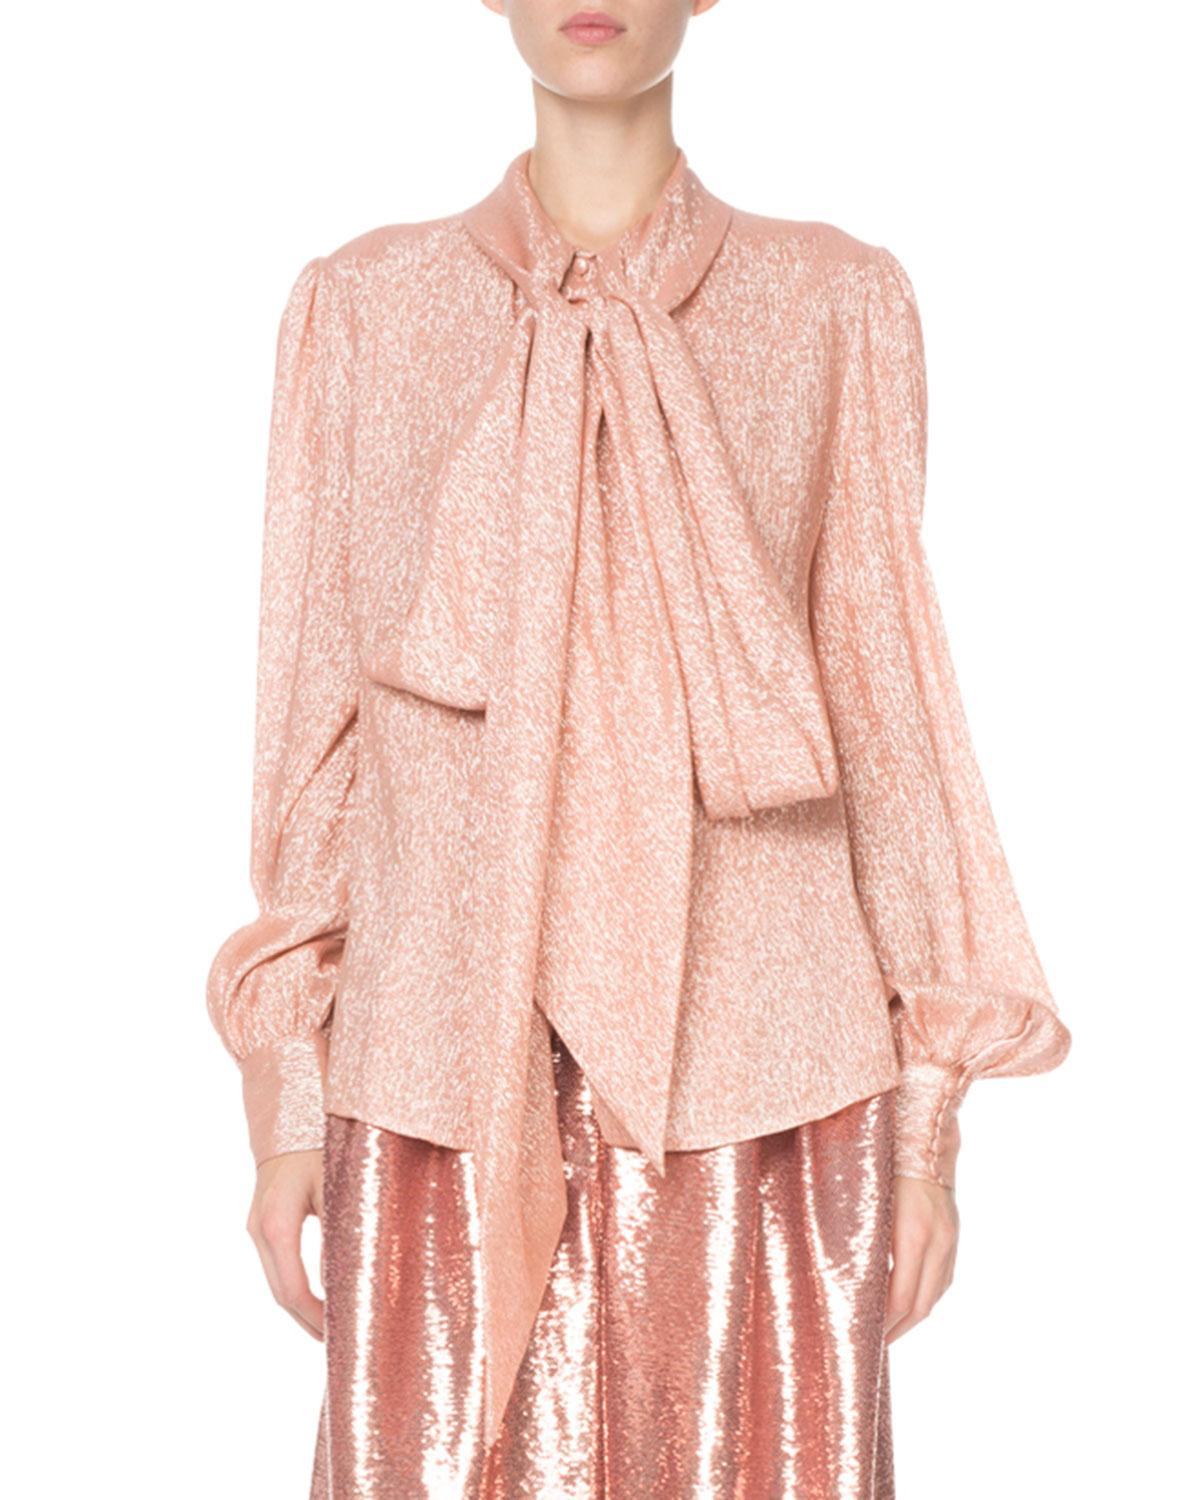 7e61754c570da6 Lyst - Marc Jacobs Shimmer Tie-neck Blouse in Pink